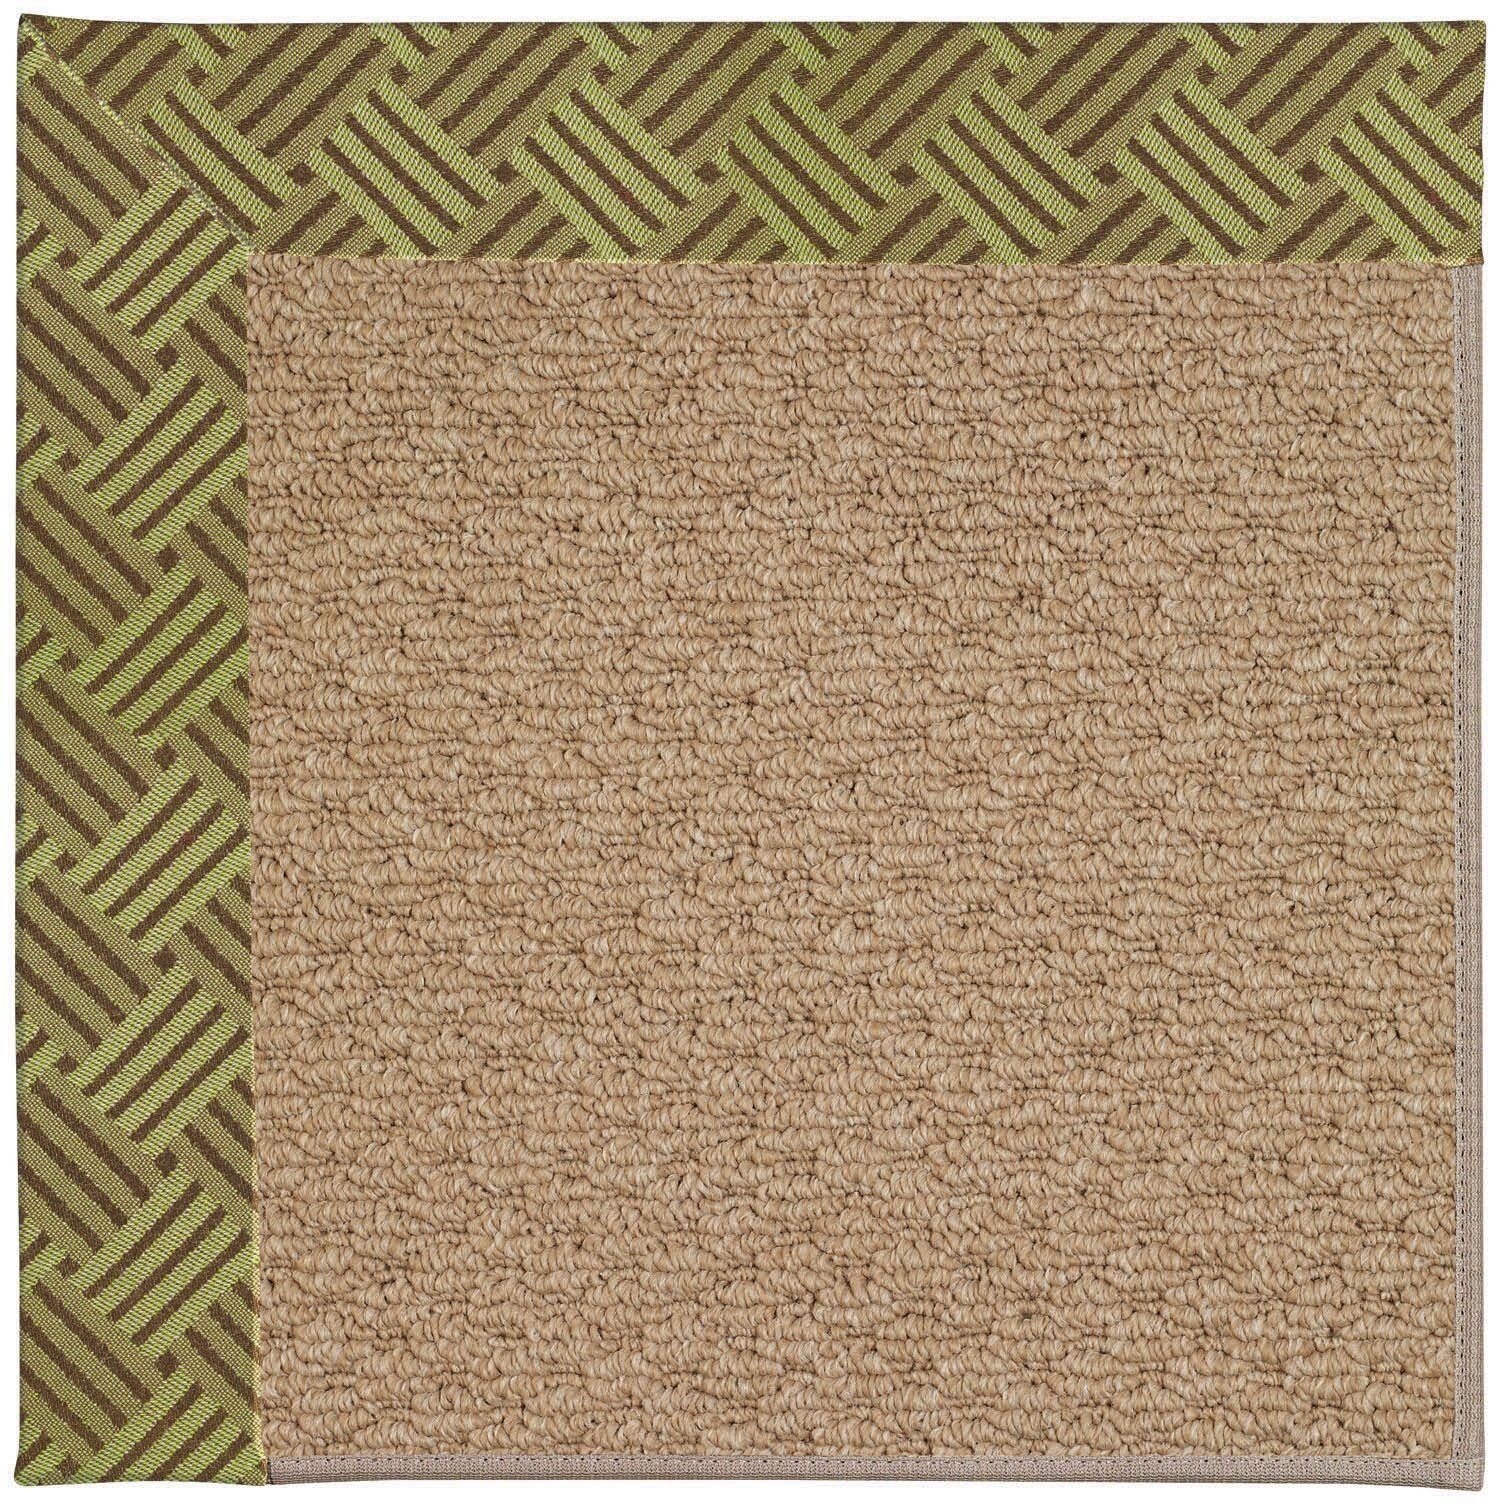 Lisle Machine Tufted Mossy Green and Beige Indoor/Outdoor Area Rug Rug Size: Round 12' x 12'